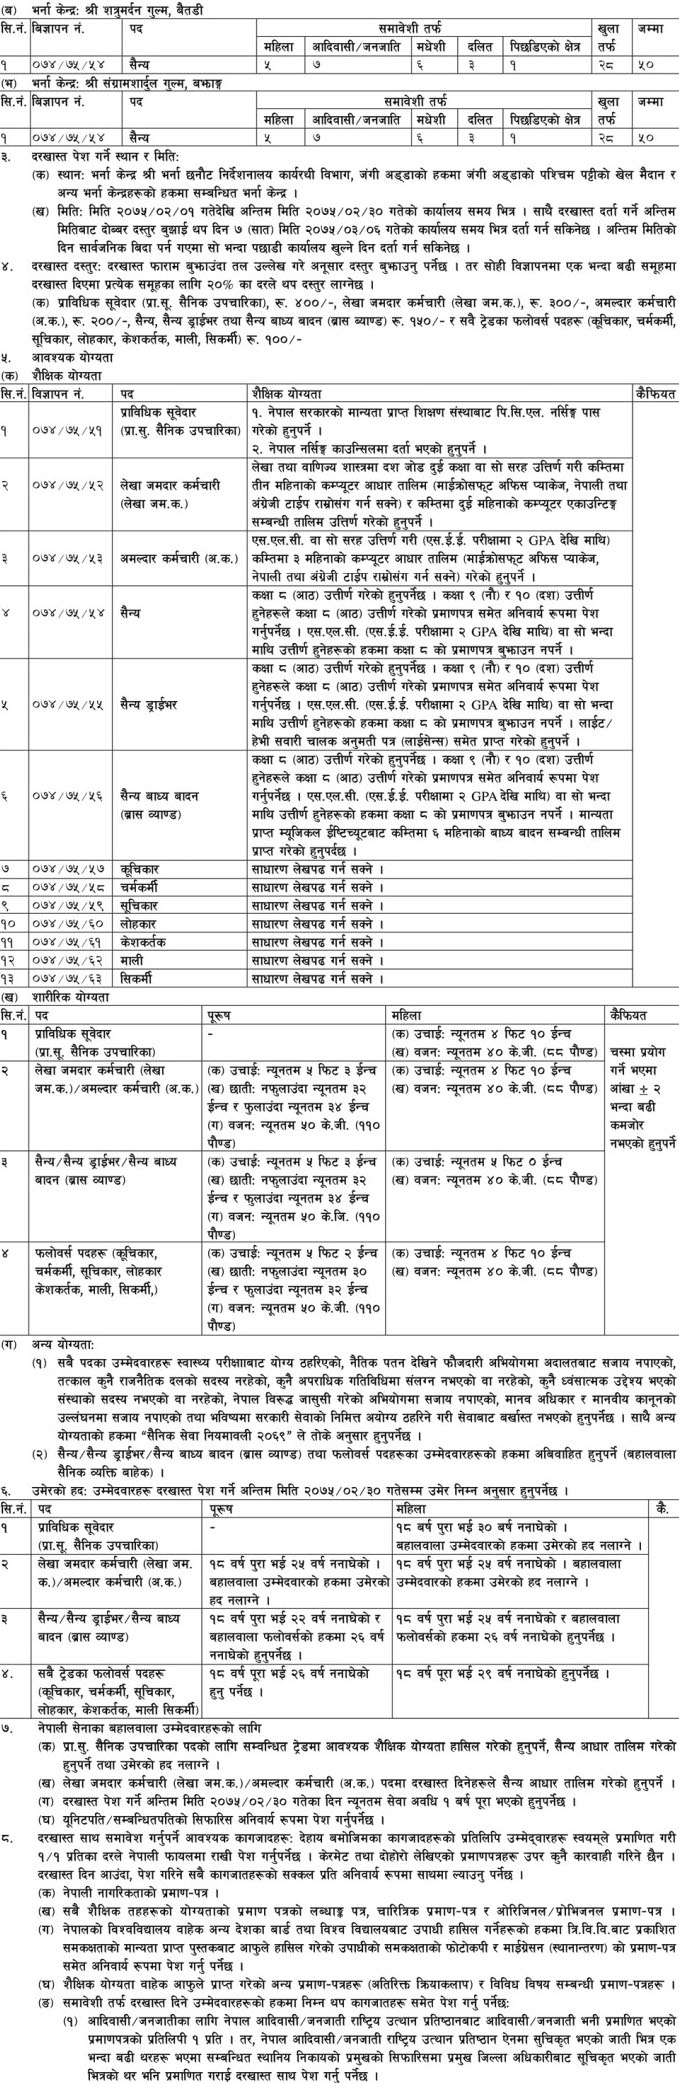 Job Vacancy In Nepal Army Job Finder In Nepal Nepali